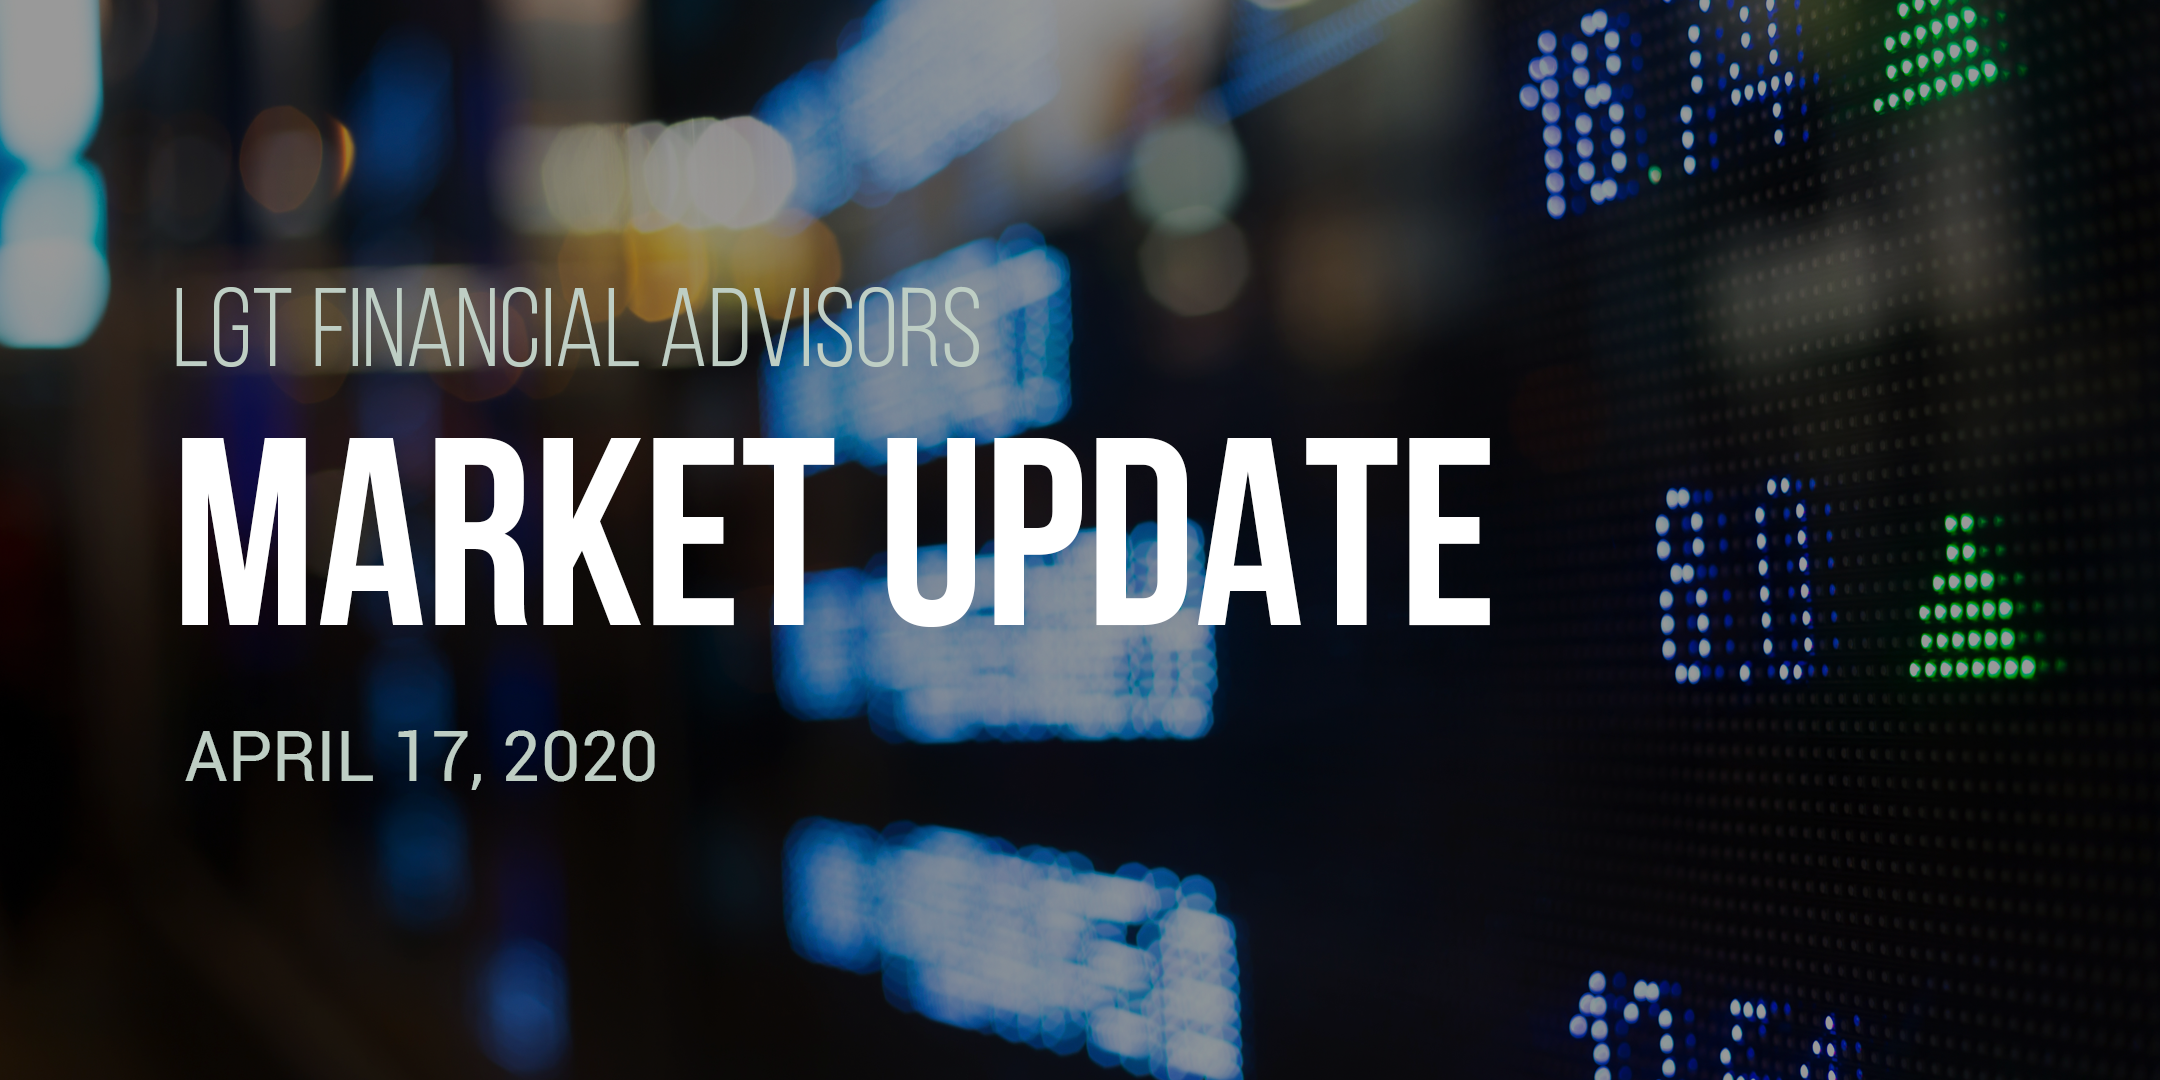 FA Market Update - April 17, 2020